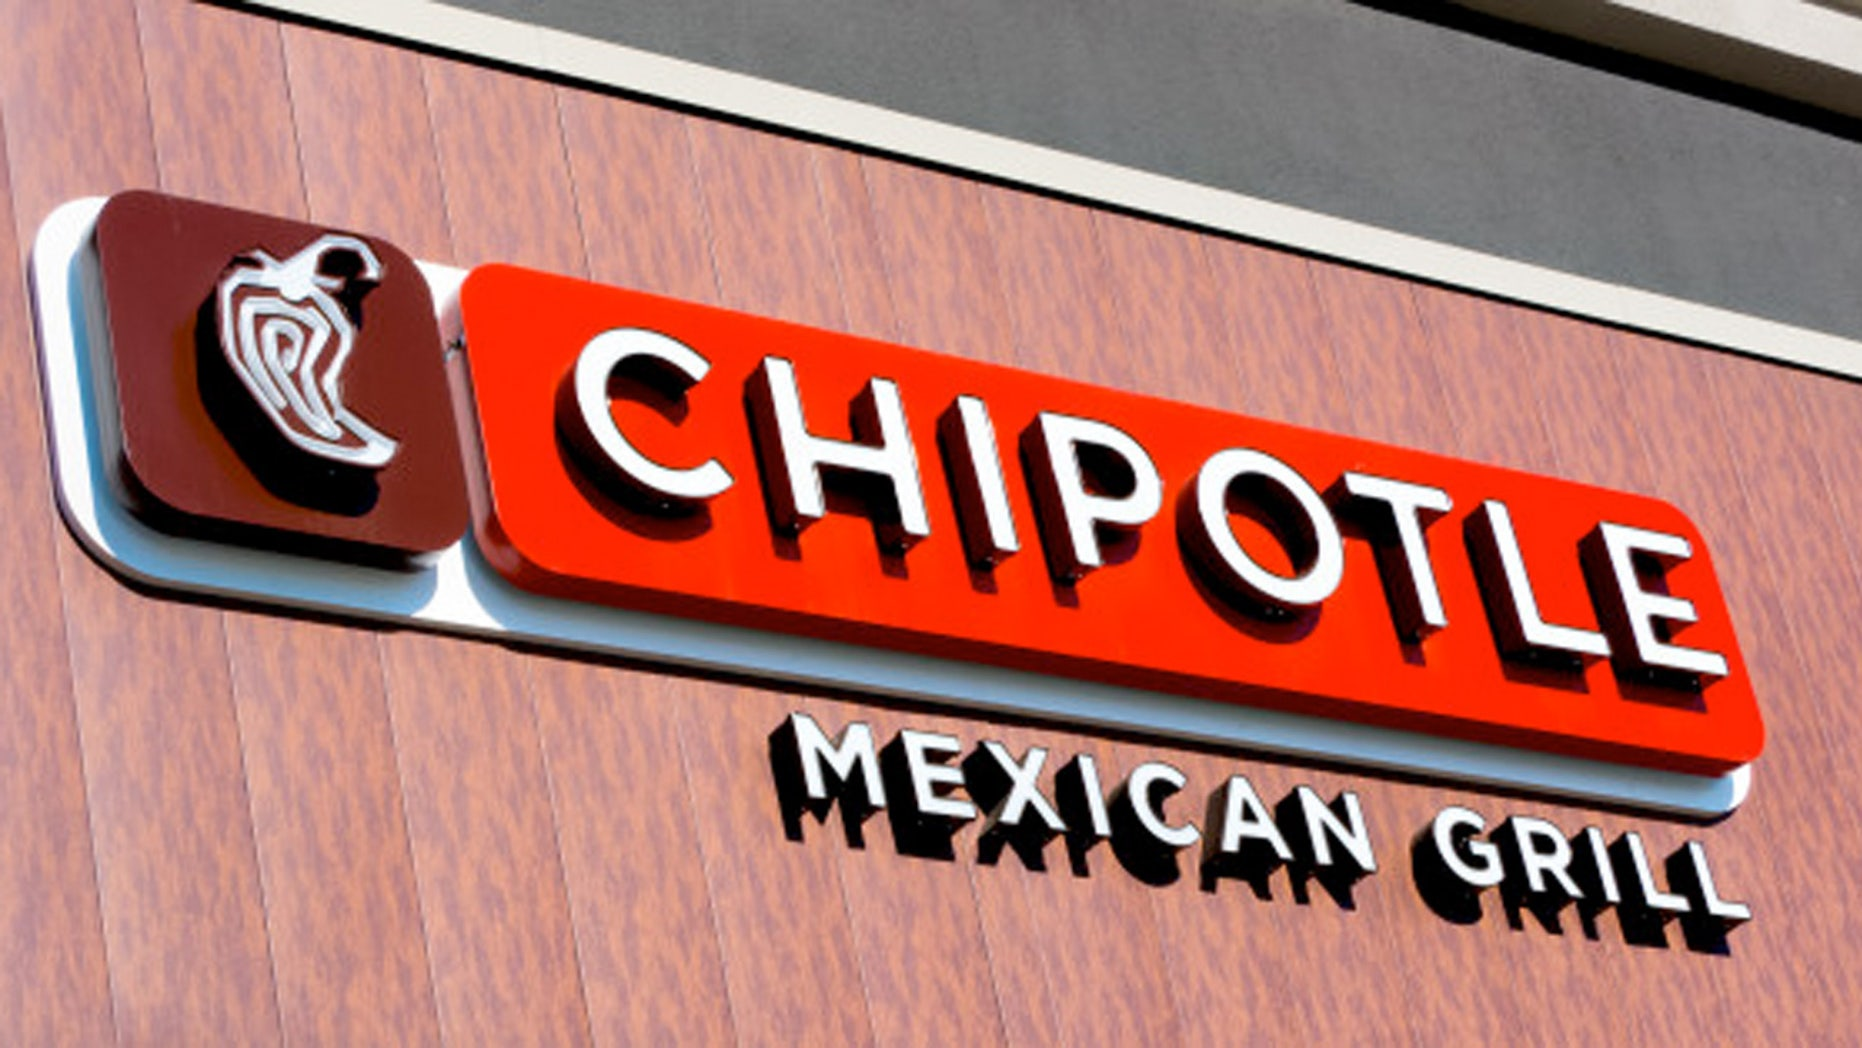 Chipotle has been the brunt of jokes and hit by lawsuits, but some experts are predicting positive growth figures as early as the end of the year.